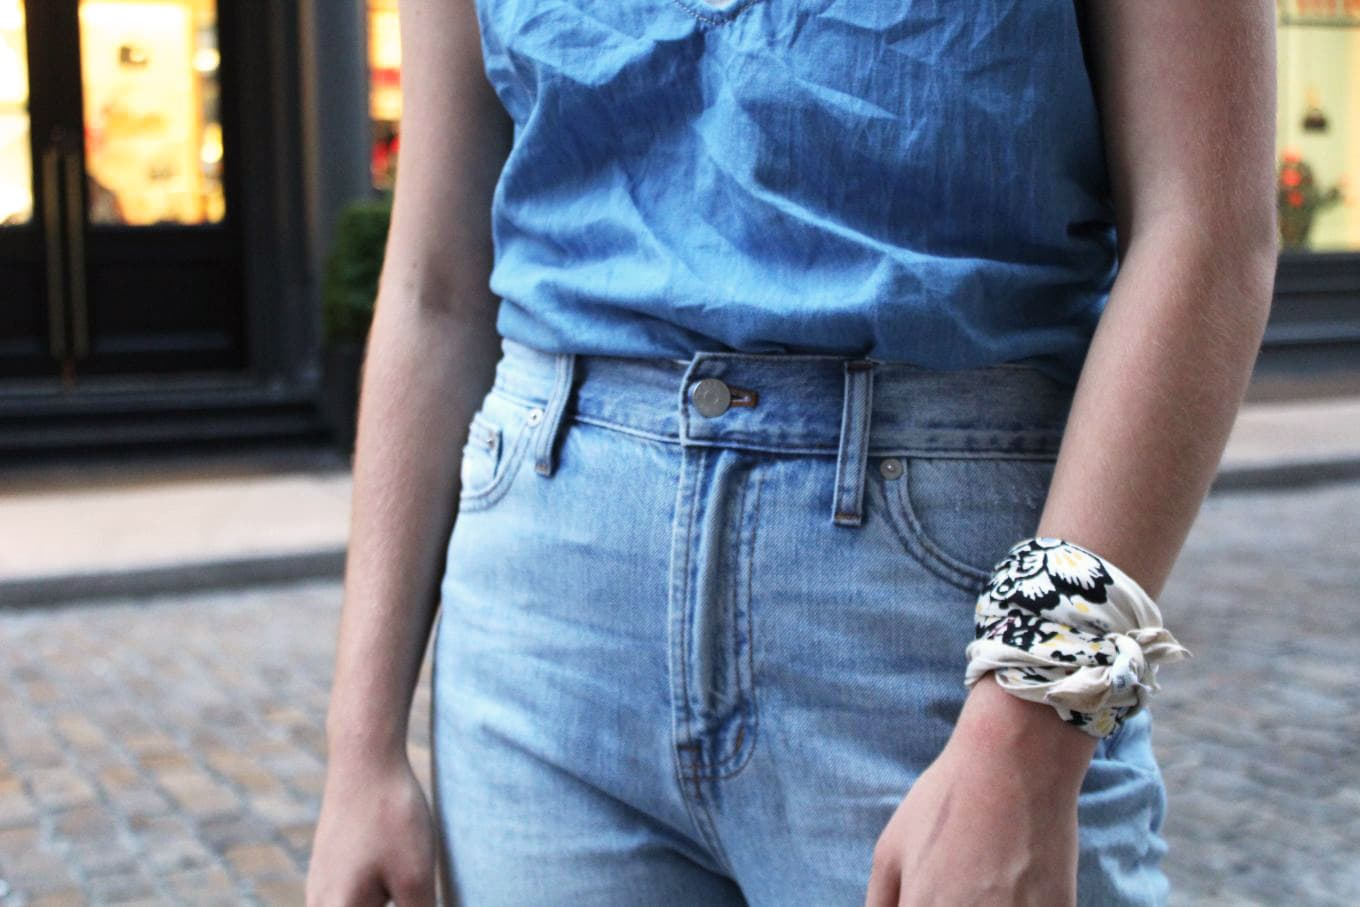 College street style in NYC - fashion intern Anna wears a blue cami, mom jeans, and a bandana worn as a bracelet